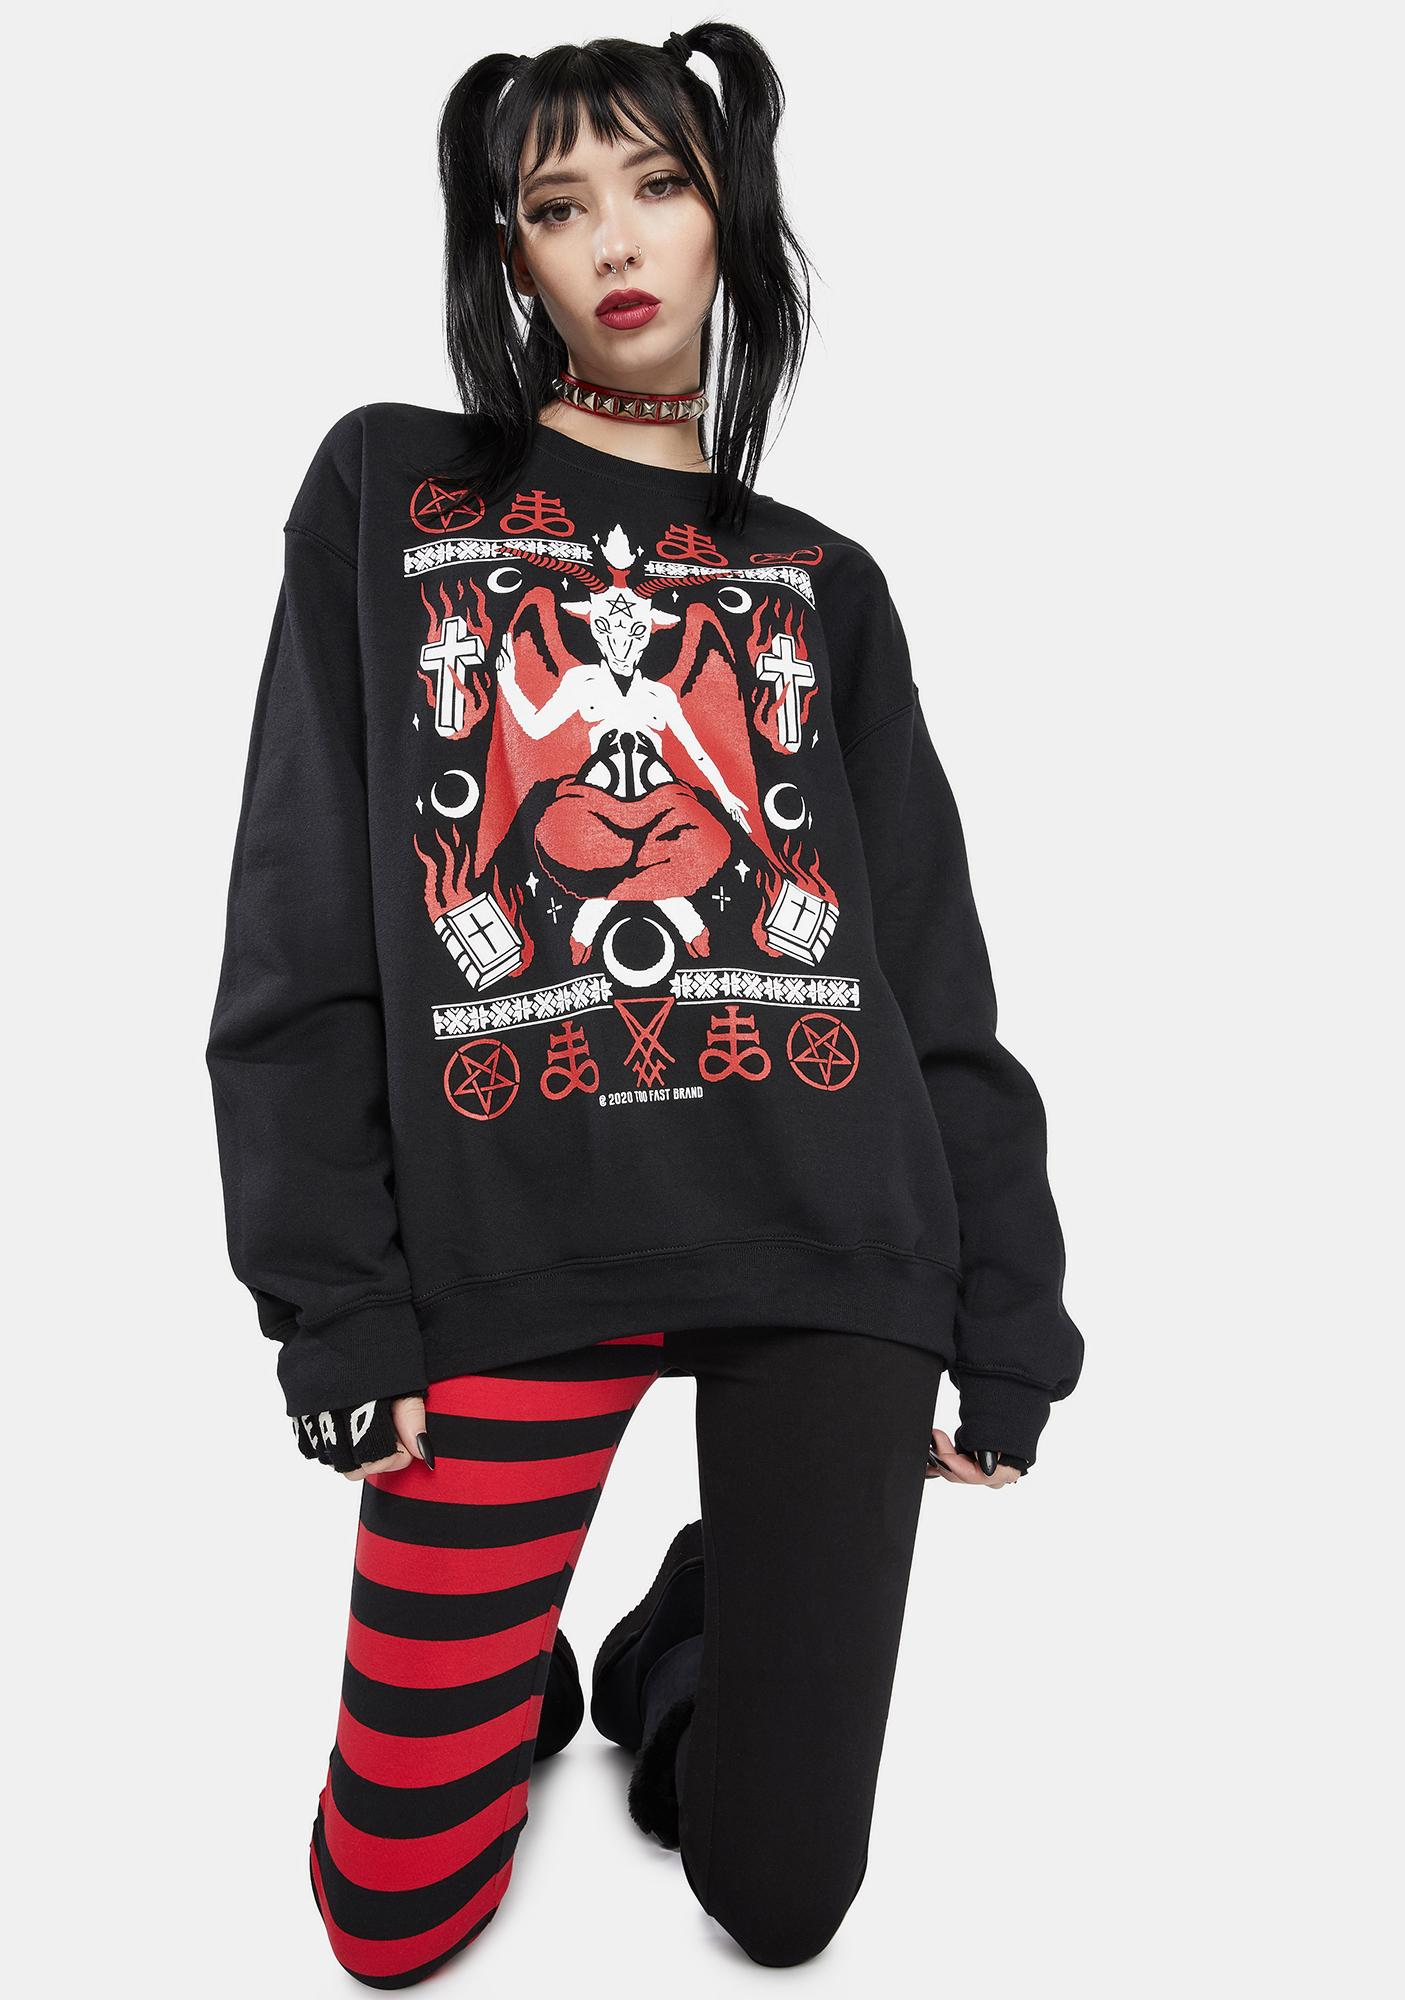 Too Fast Baphoclaus Christmas In Hell Graphic Sweatshirt